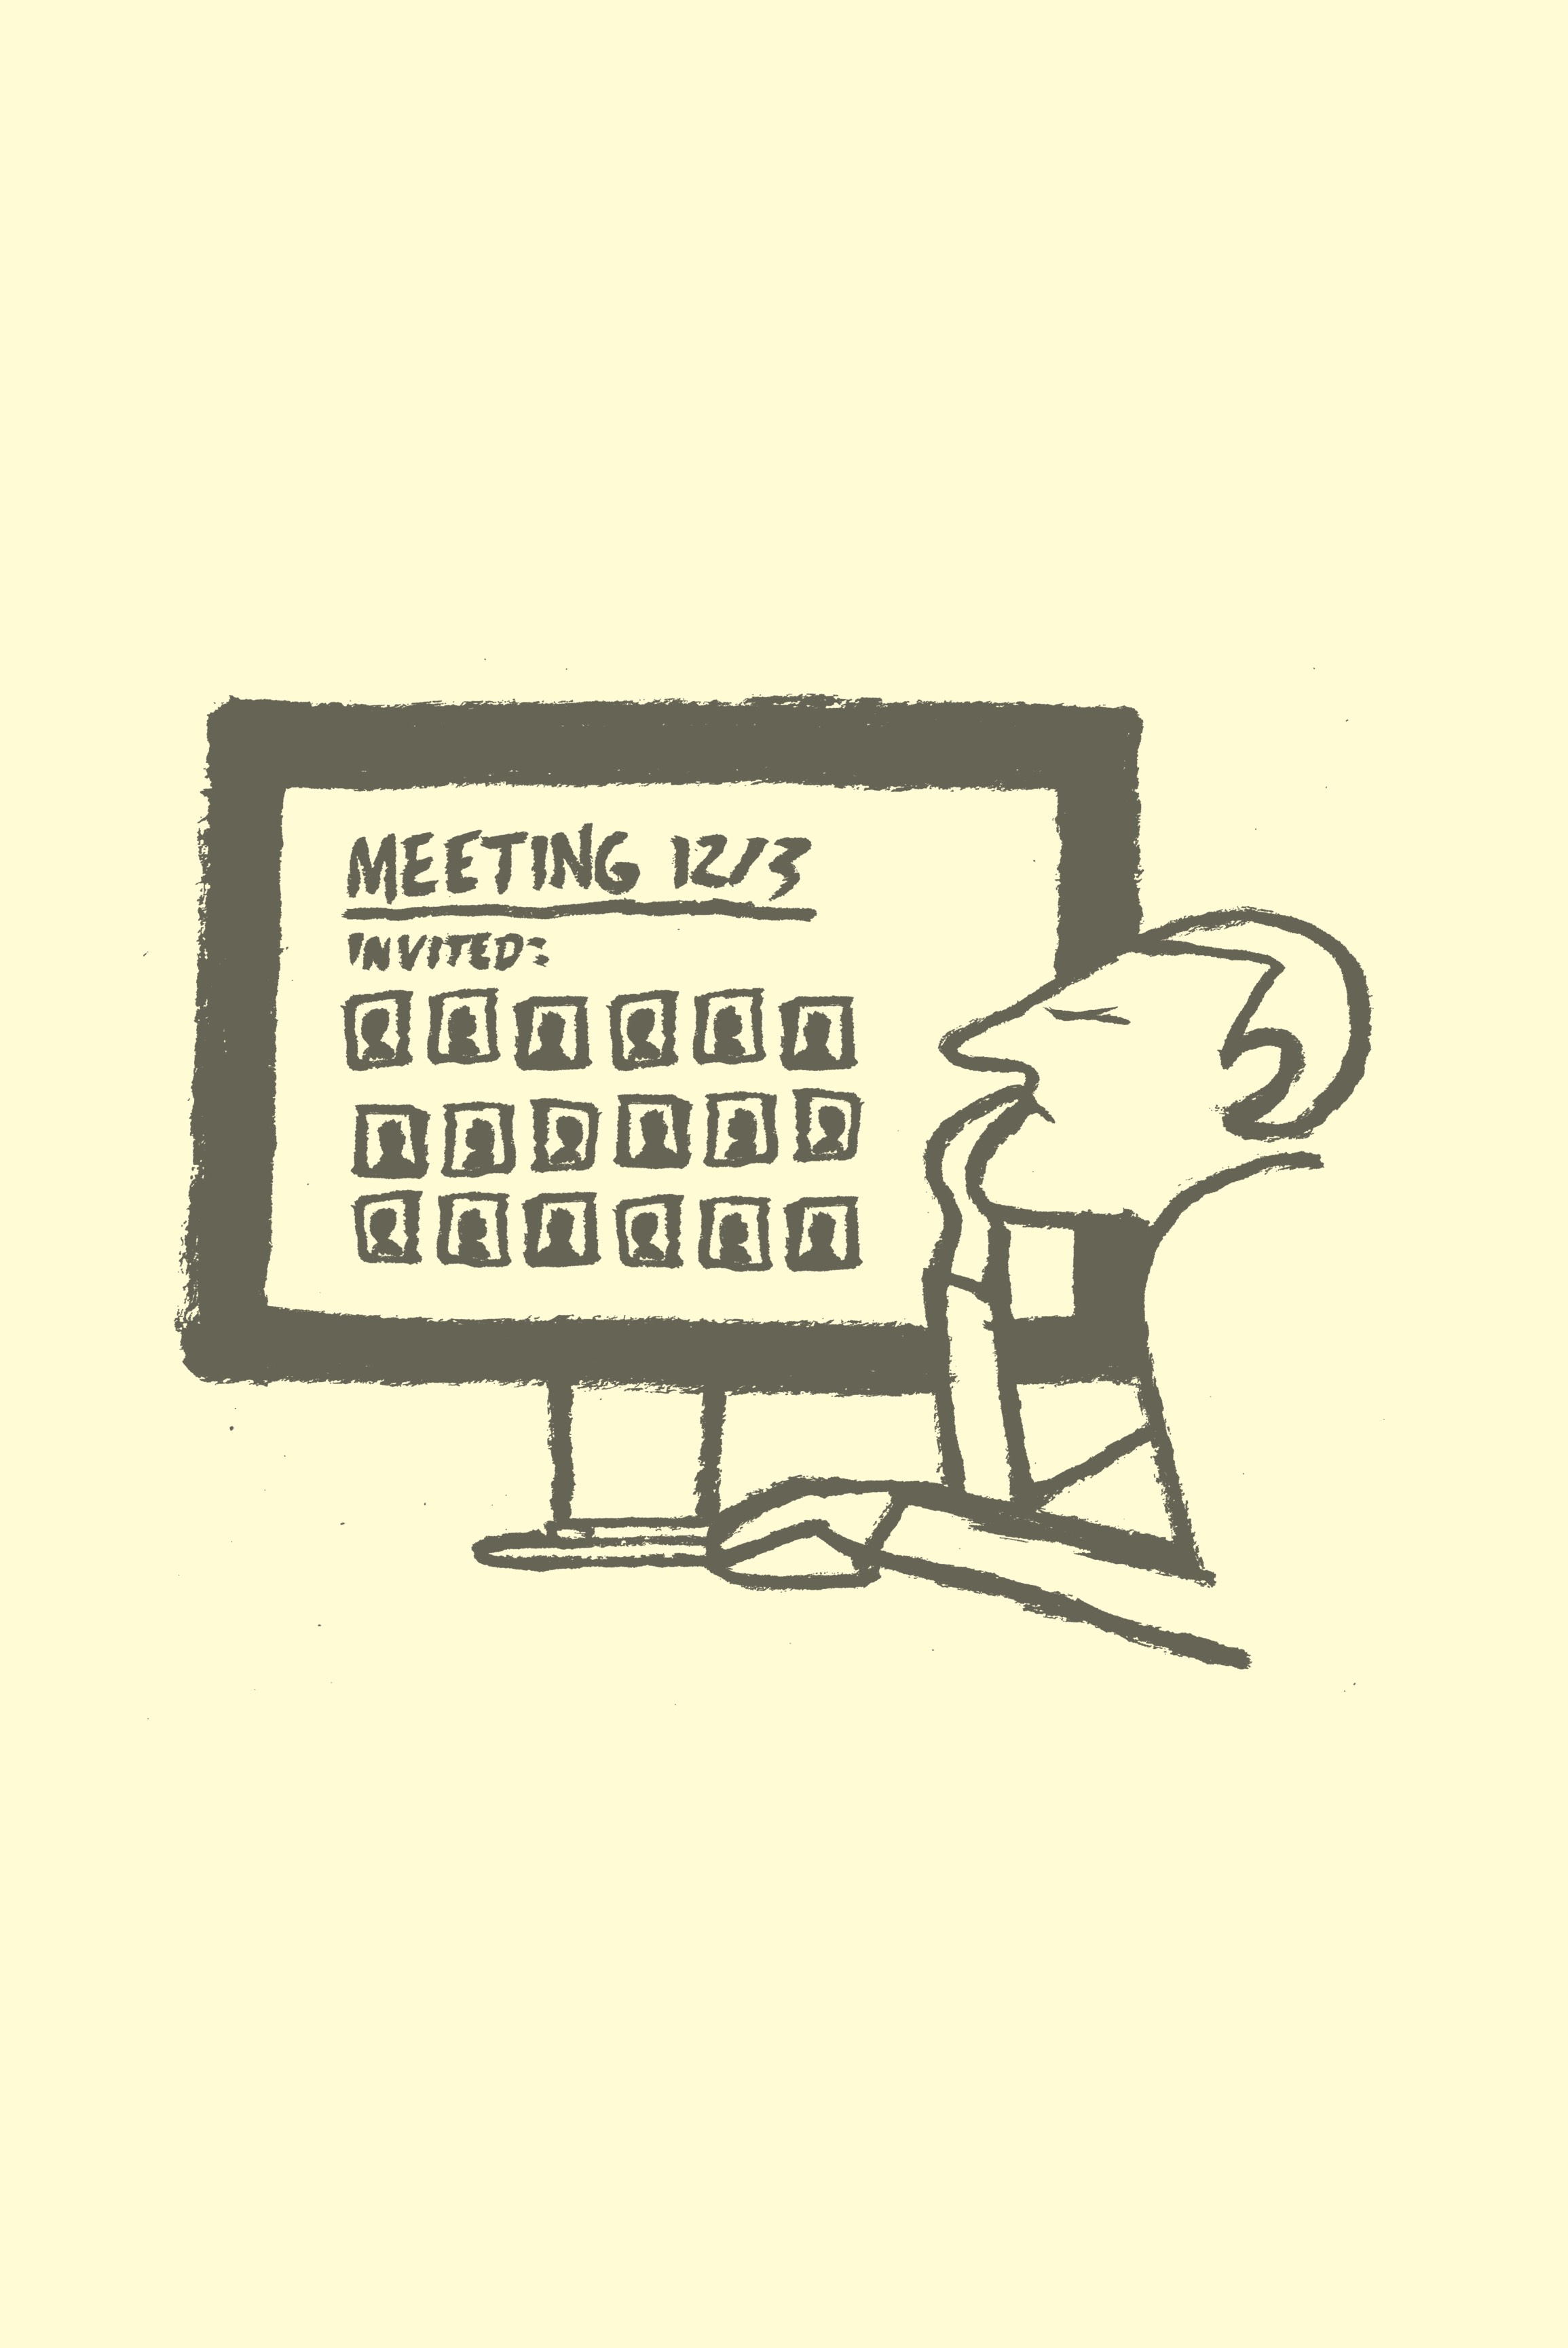 A cartoon of a disgruntled man reviewing a meeting invitation on his monitor.